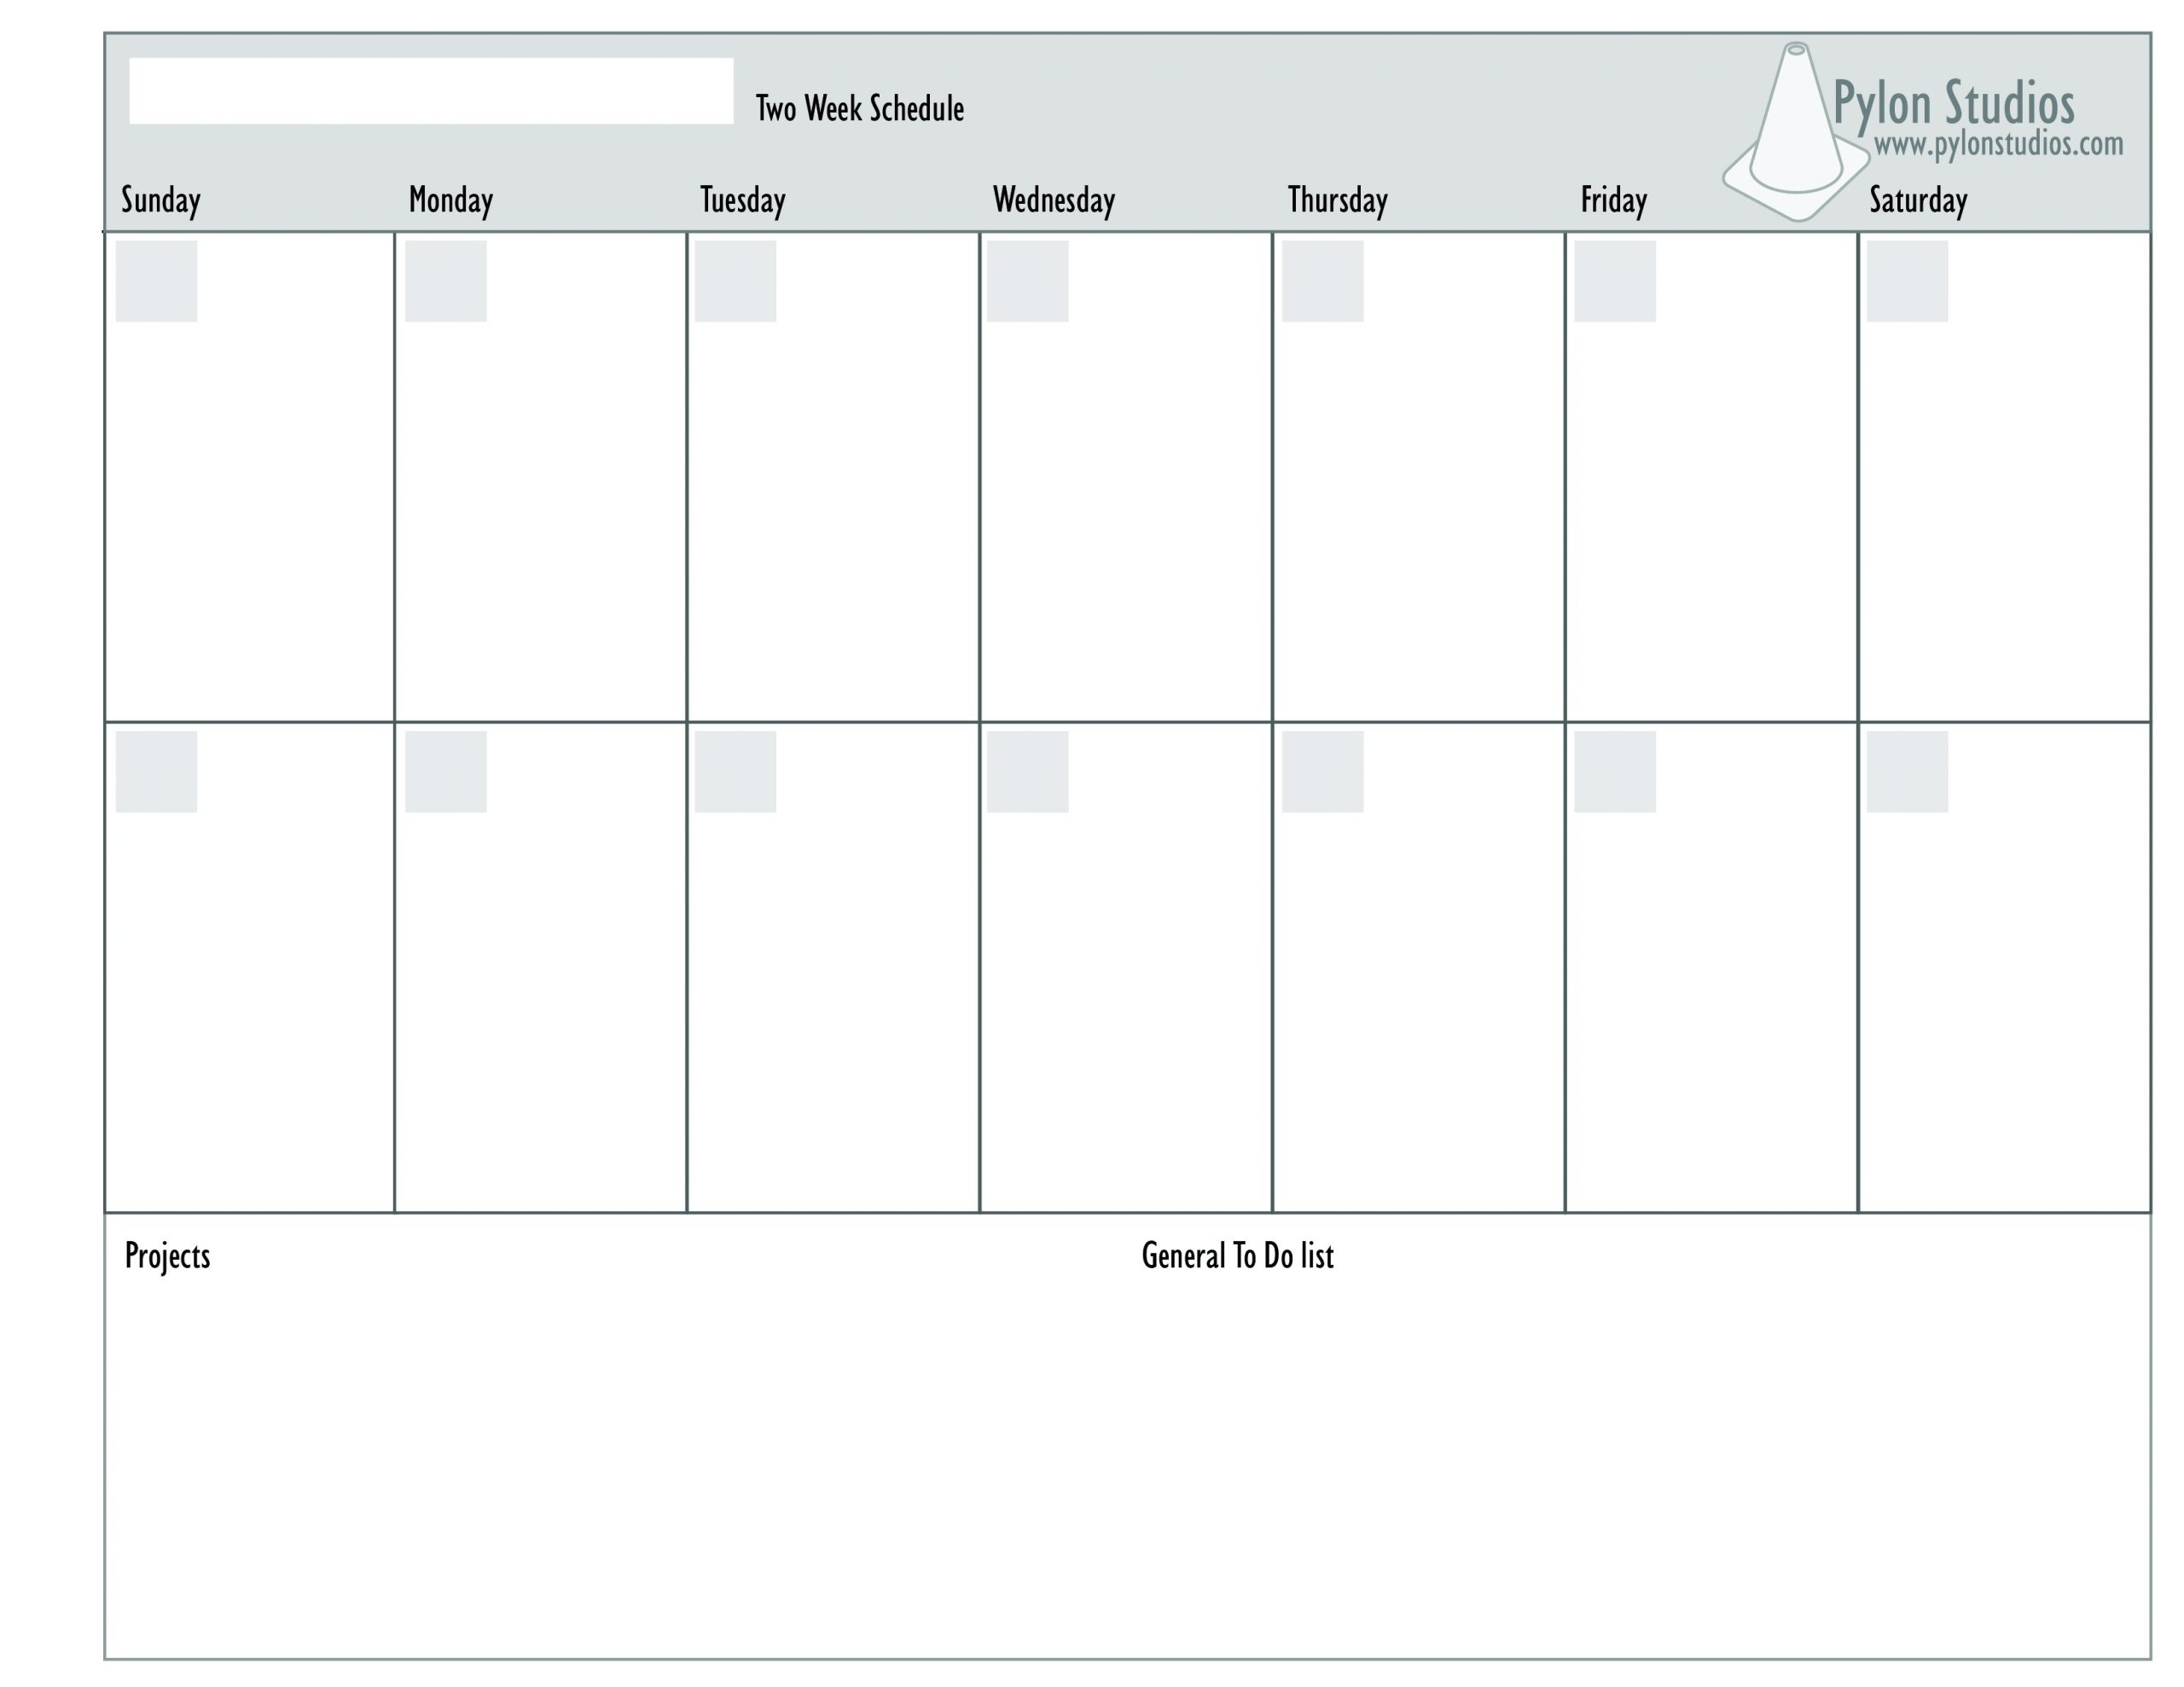 Blank Two Week Schedule Template - Calendar Inspiration Design 2 Week Calendar Sample